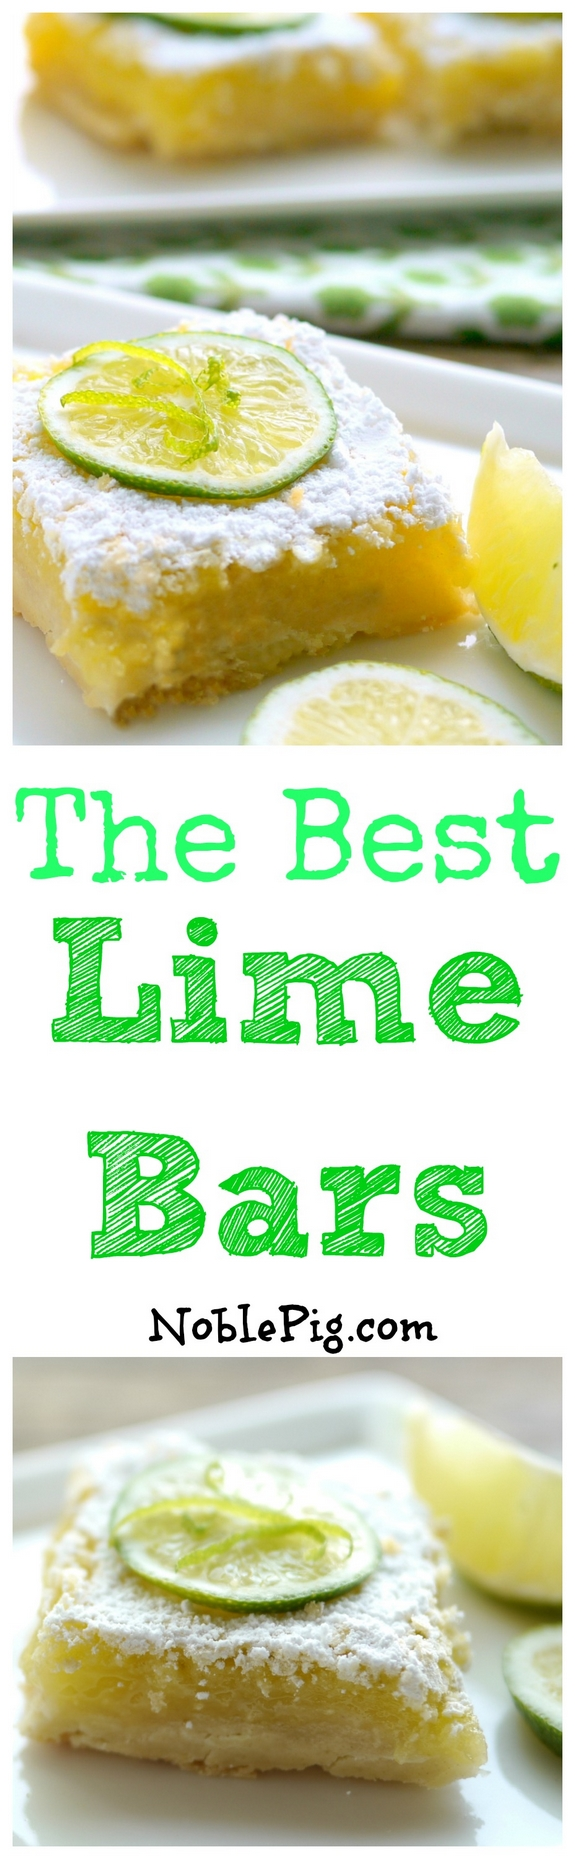 The Best Lime Bars You Could Ever Make